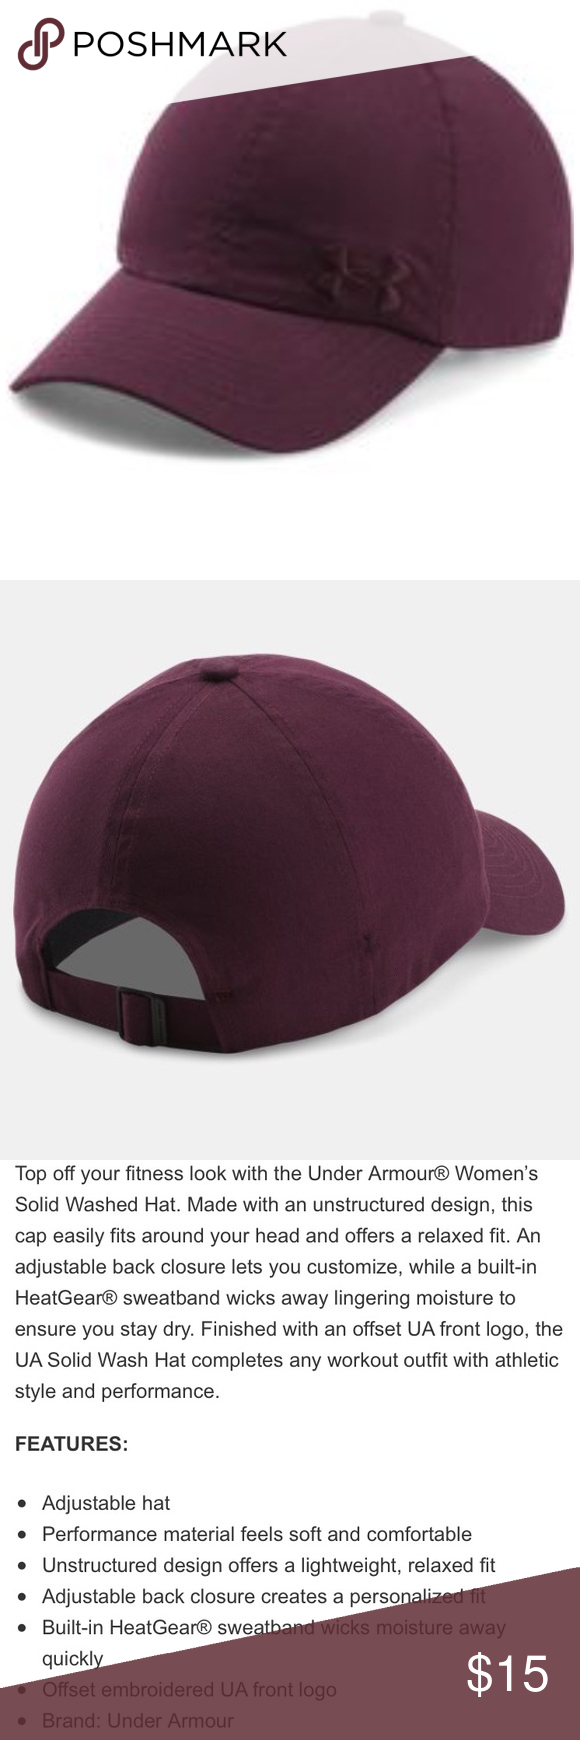 NWT Women s Under Armour Burgundy Baseball Cap Hat New with Tags! Under  Armour Accessories Hats dbe574ede36a